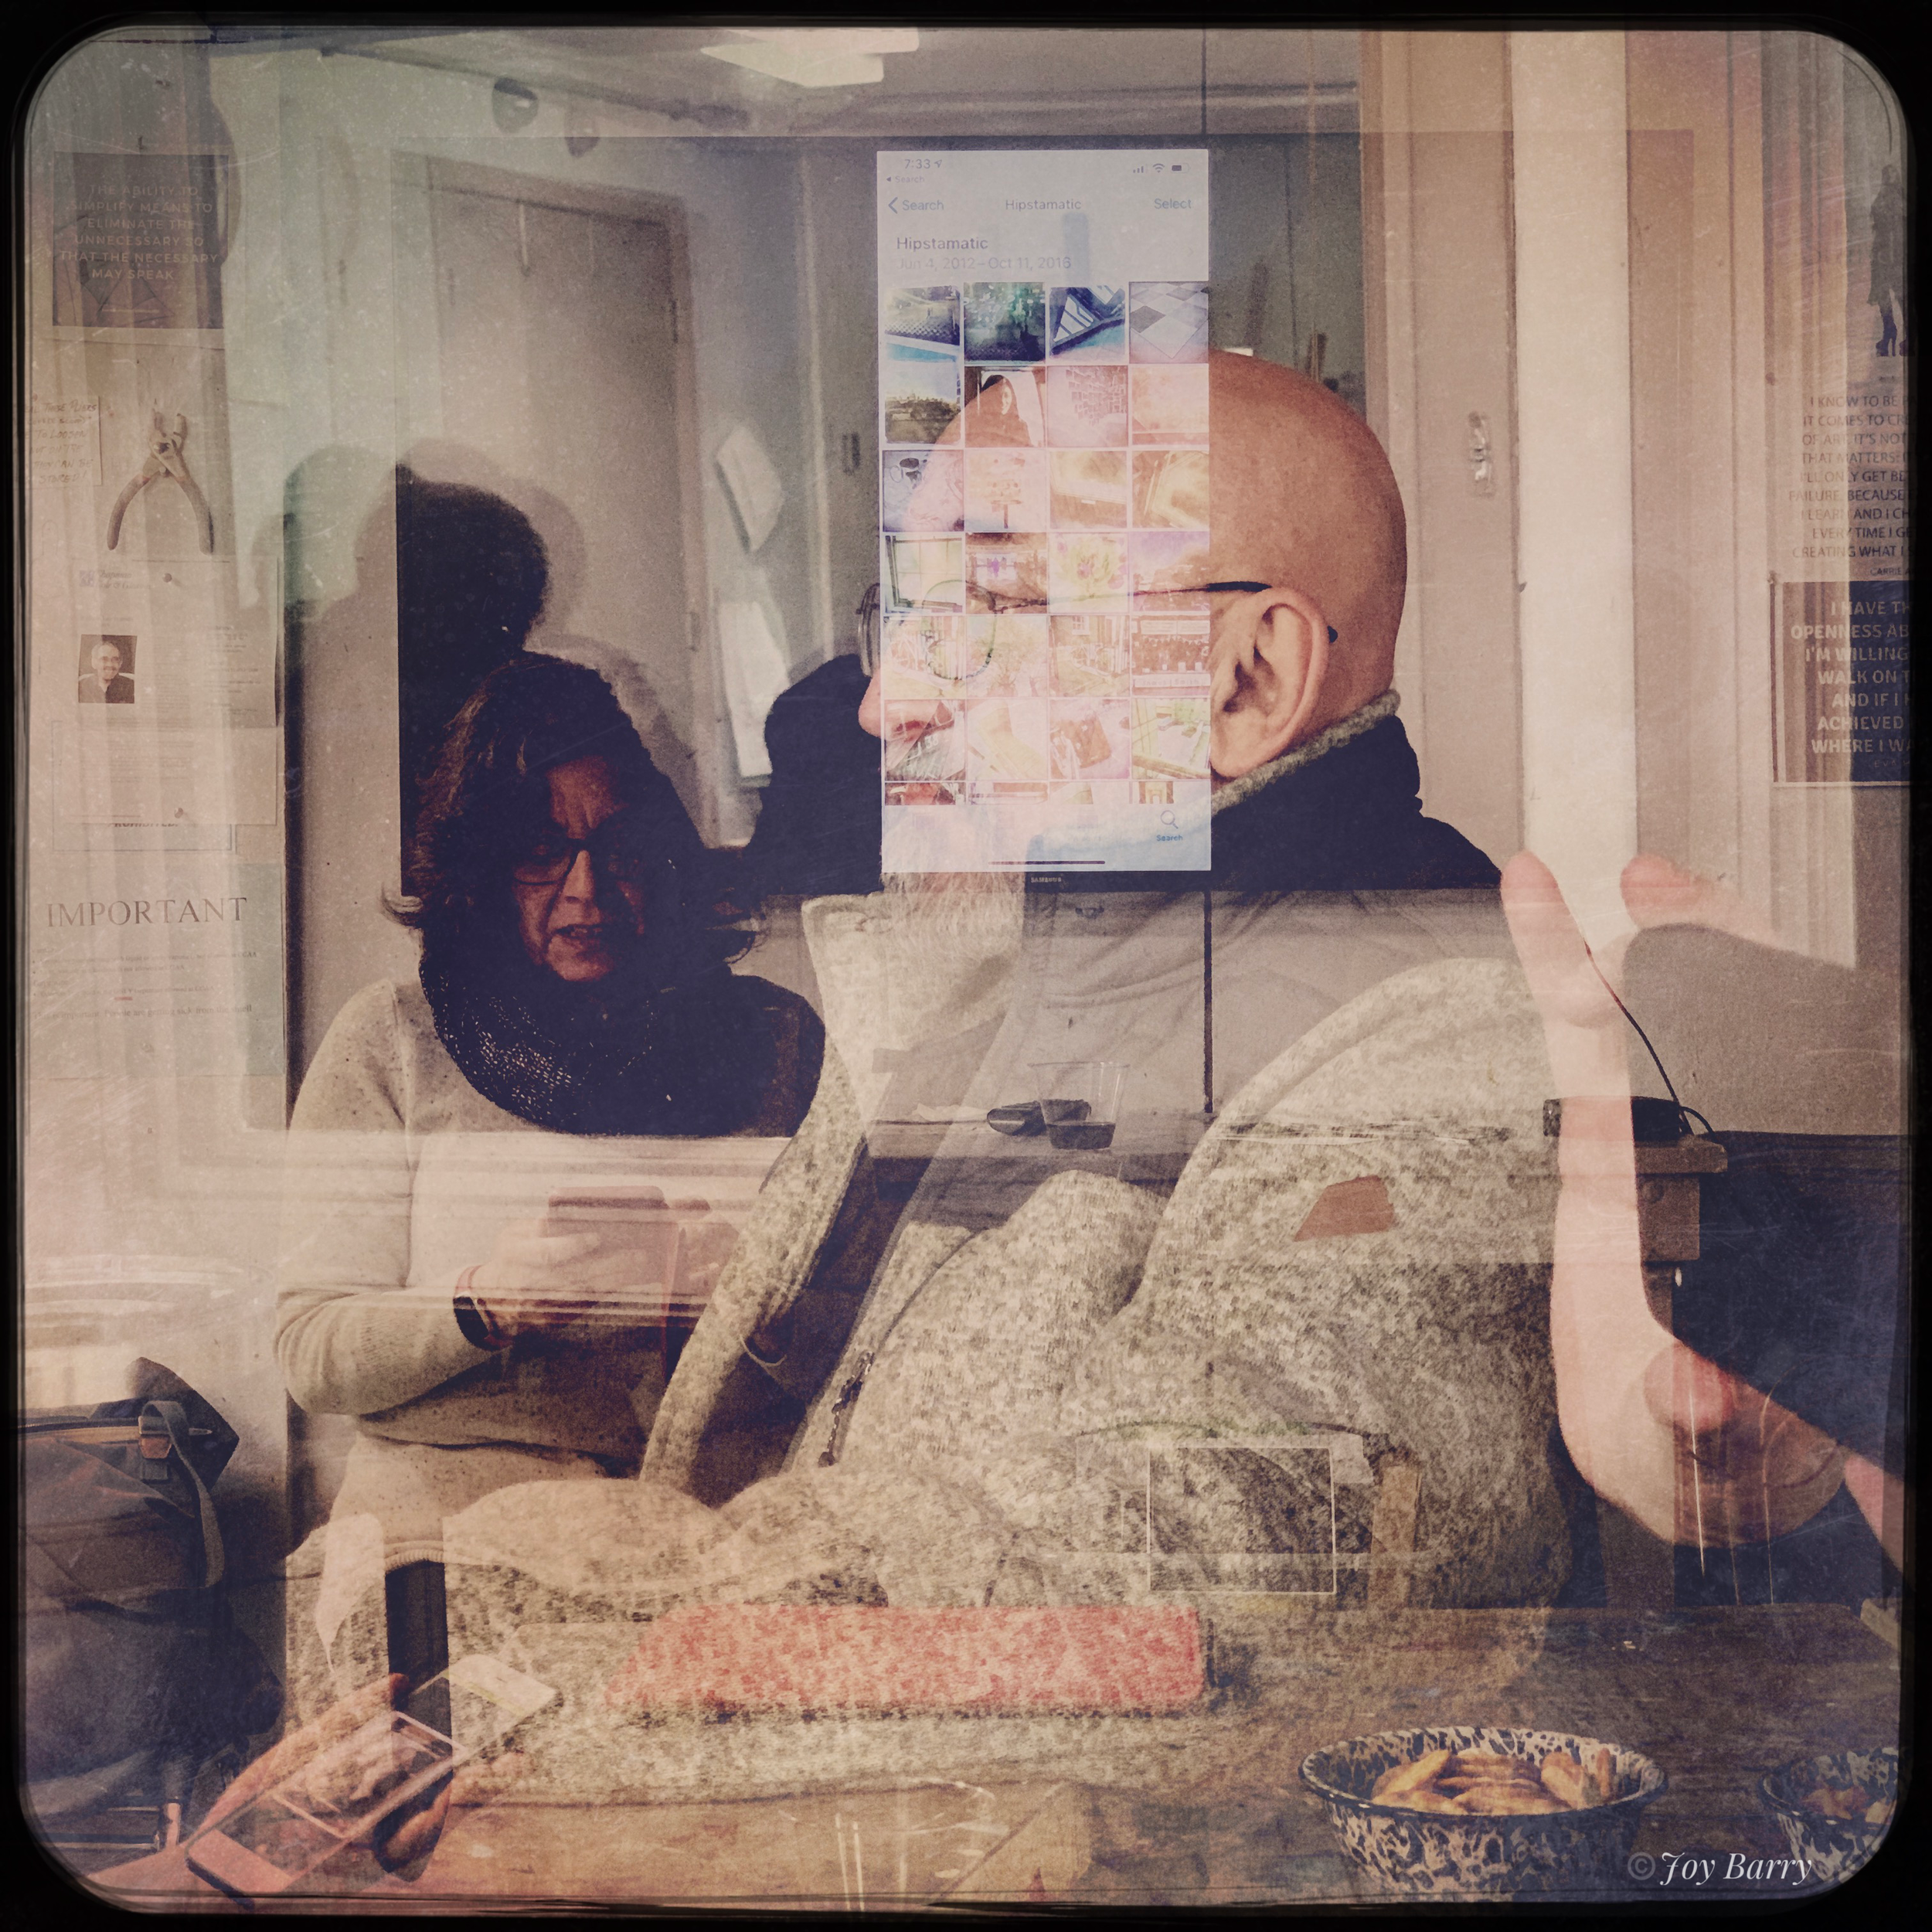 April 2, 2019 - Having fun learning Hipstamatic (a camera replacement app) with Barbara Braman at tonight's meeting of the Digital Arts Group at Cape Cod Arts Center!